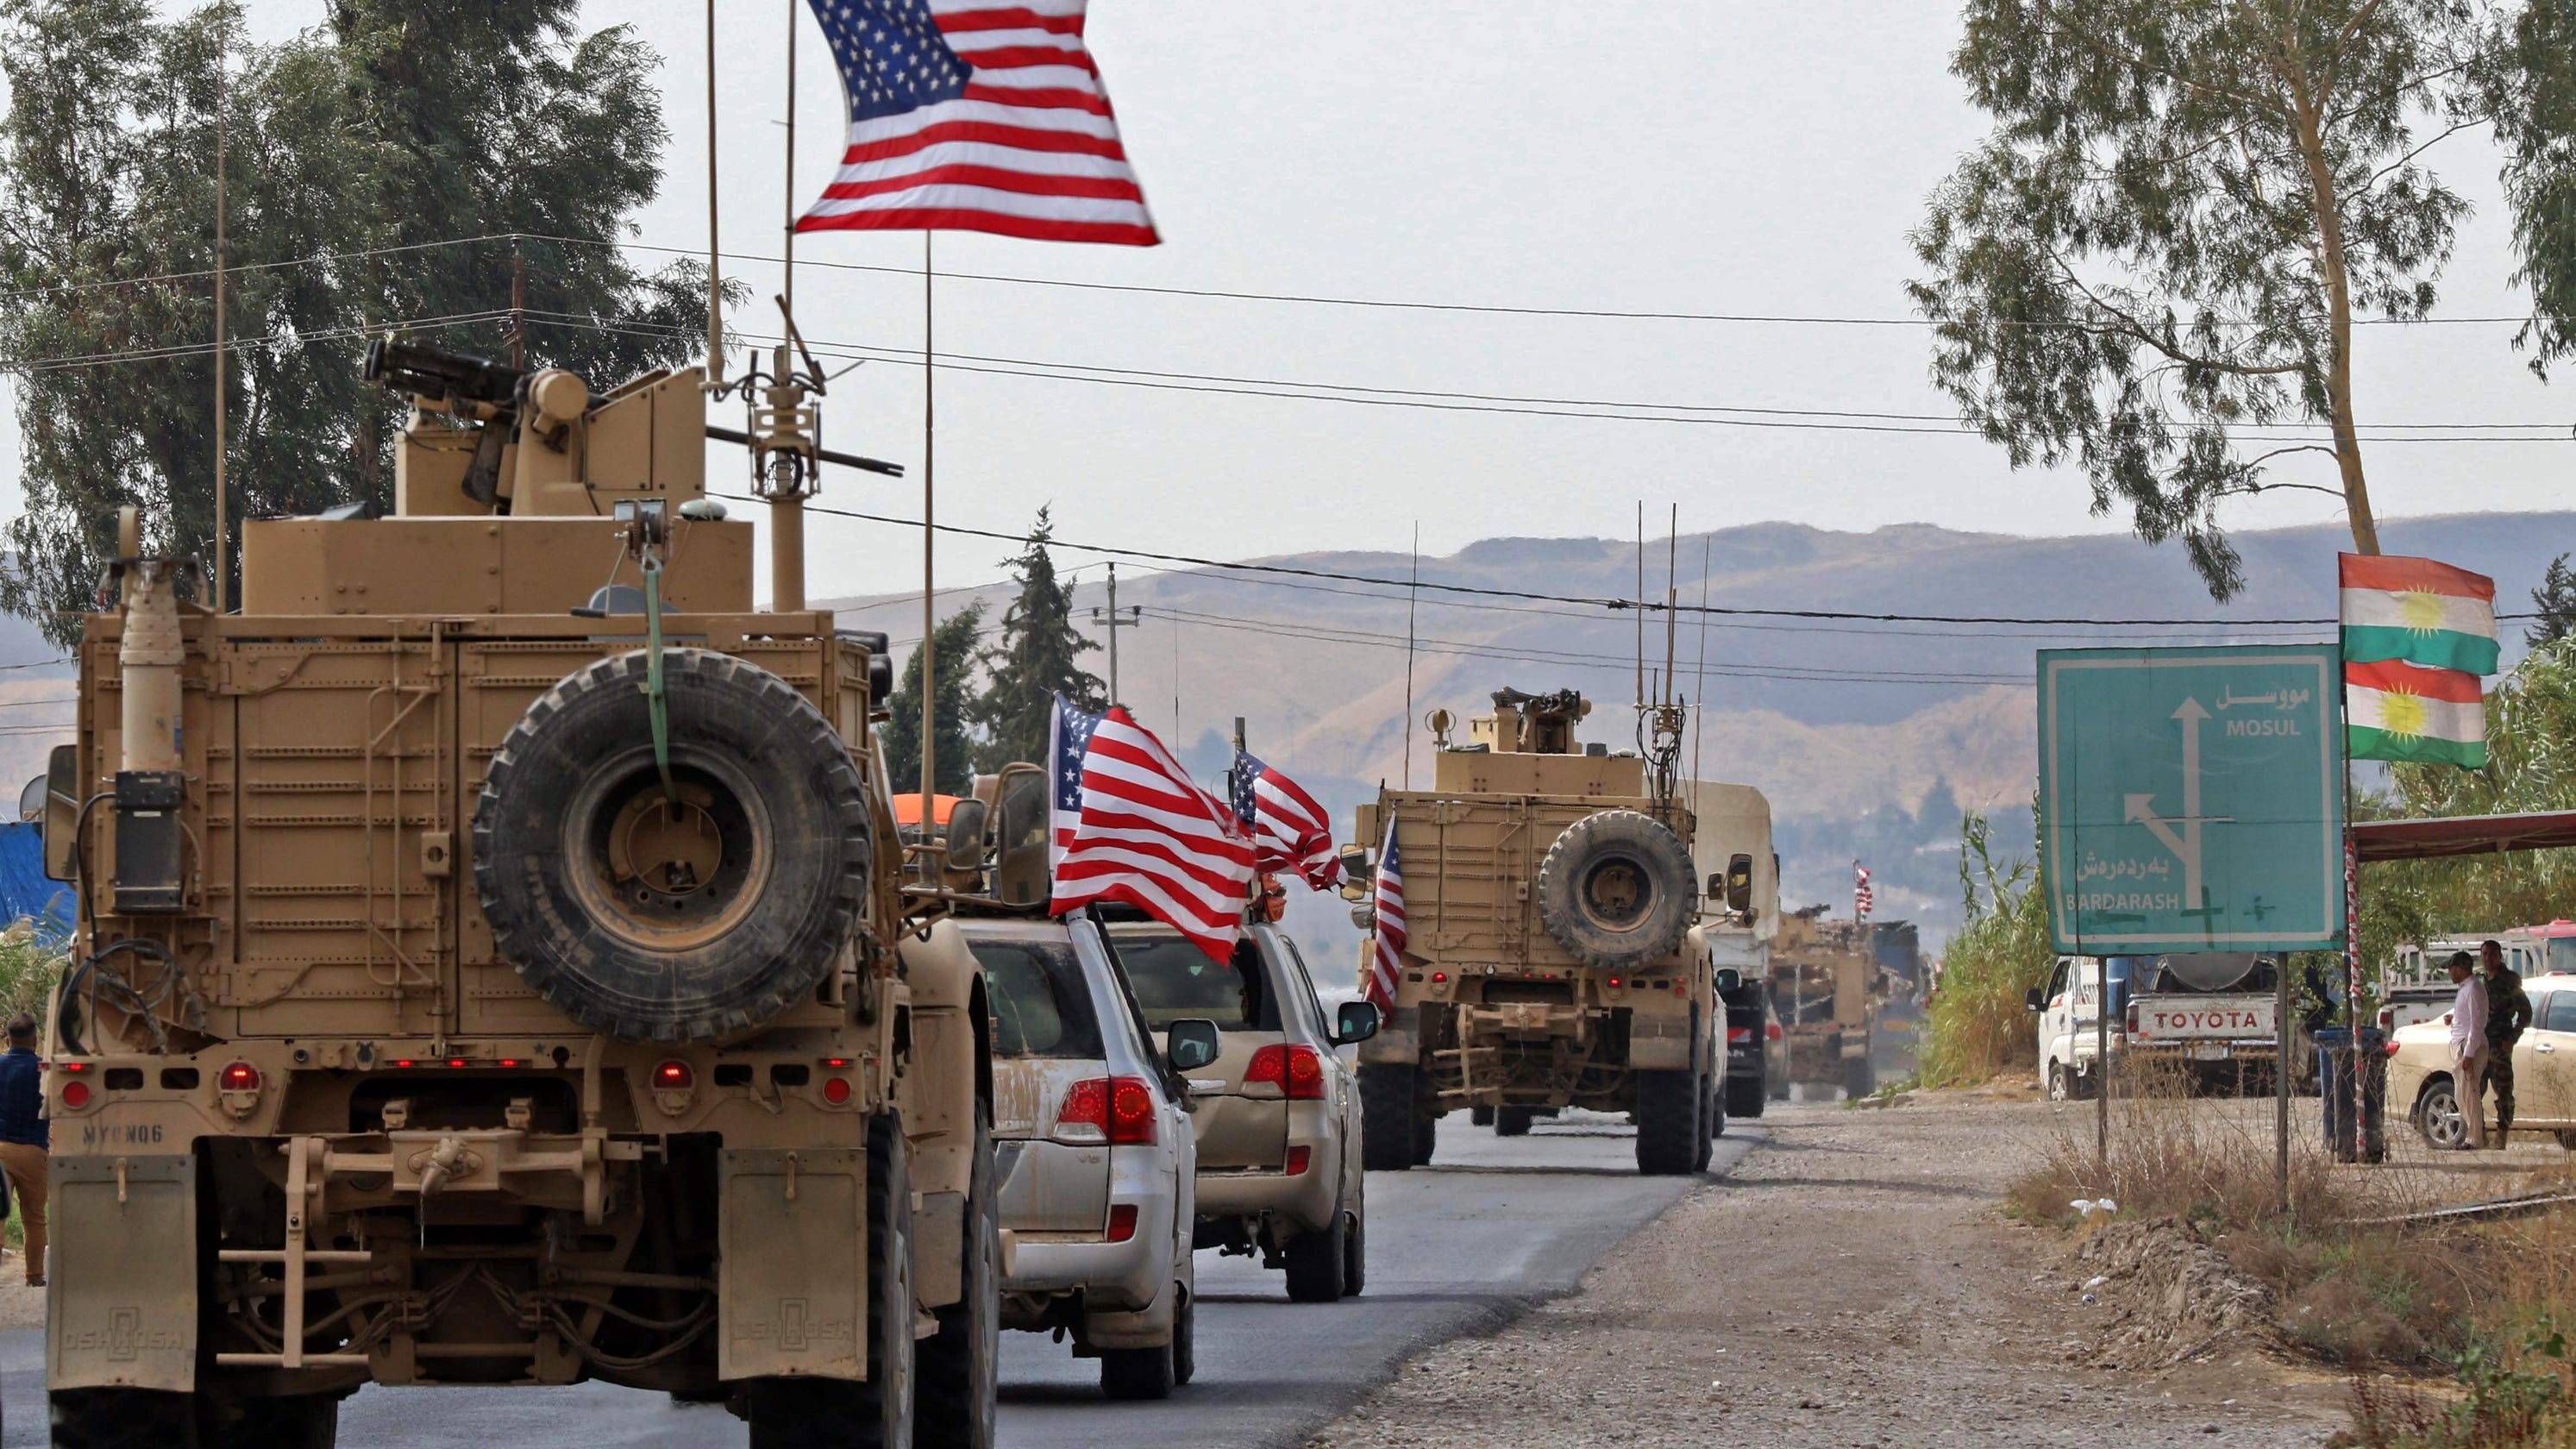 Westlake Legal Group 260f363a-9fe0-40e8-a7c3-0e380a859526-AFP_AFP_1LL7EP Trump declares 'big success' in Syria; will lift sanctions on Turkey